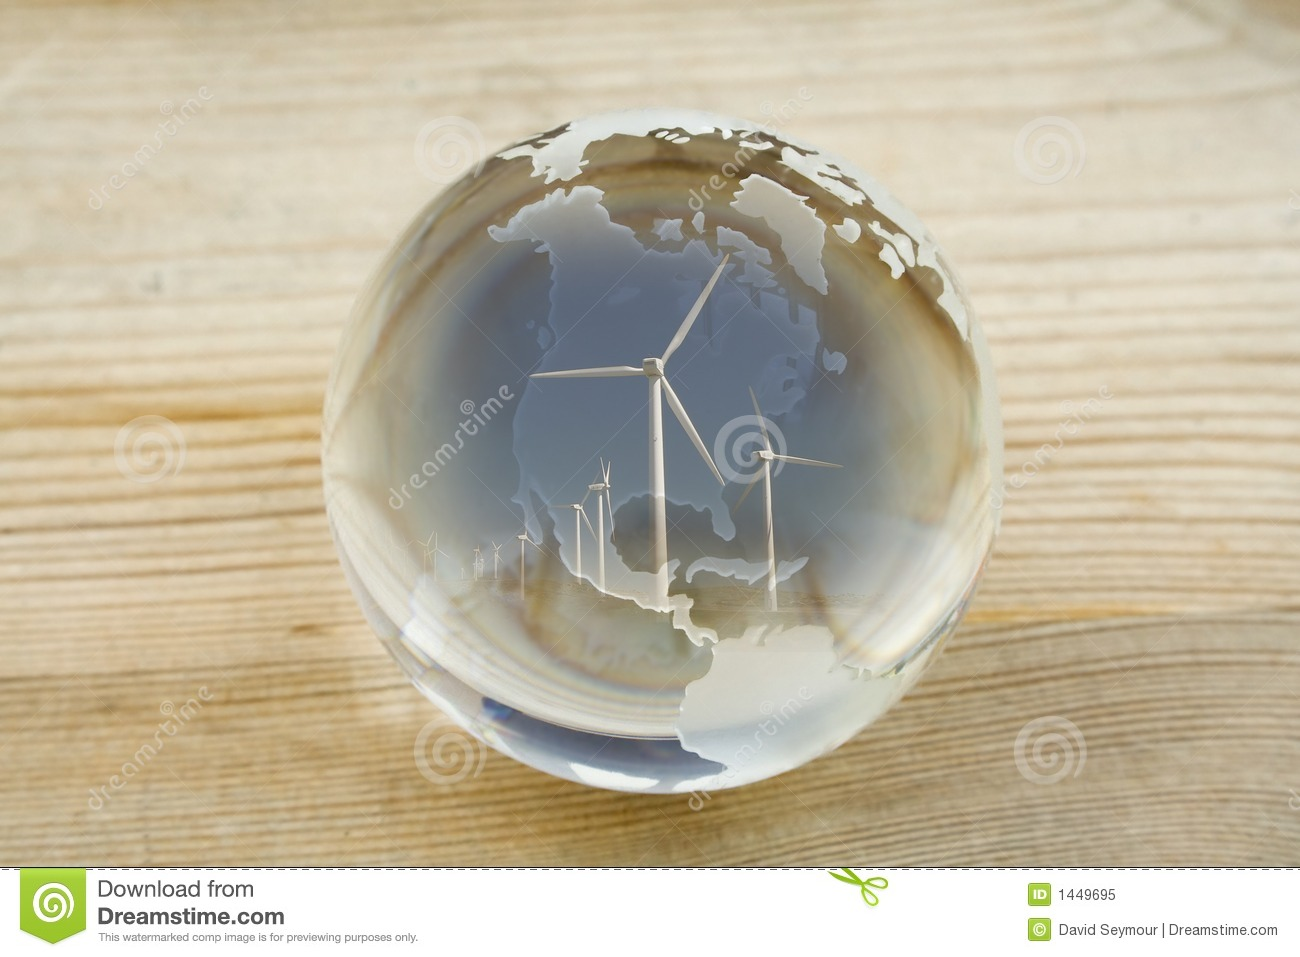 Crystal ball globe with wind farm over North and Central America